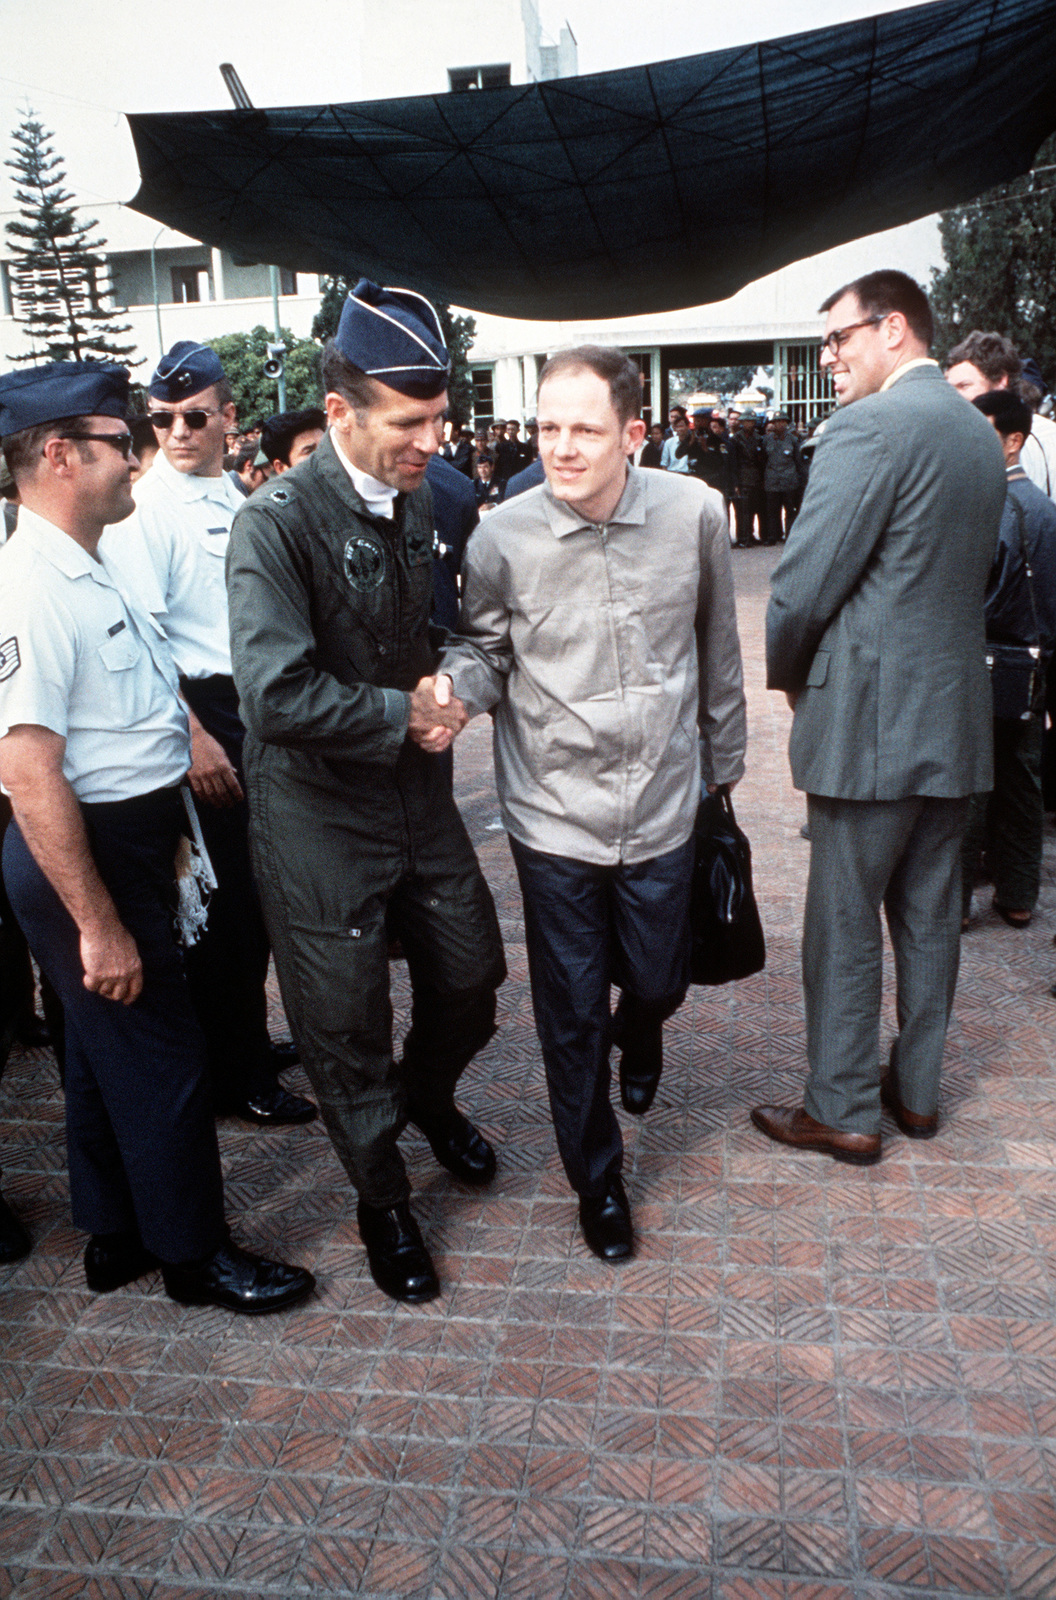 At Gia Lan Airport, surrounded by North Vietnamese and American officials, the press and public, just released, ex-POW U.S. Navy LCMDR Joseph C. Plumb Jr., (Captured 19 May 67) walks to meet his escort officer for the trip to Clark Air Base